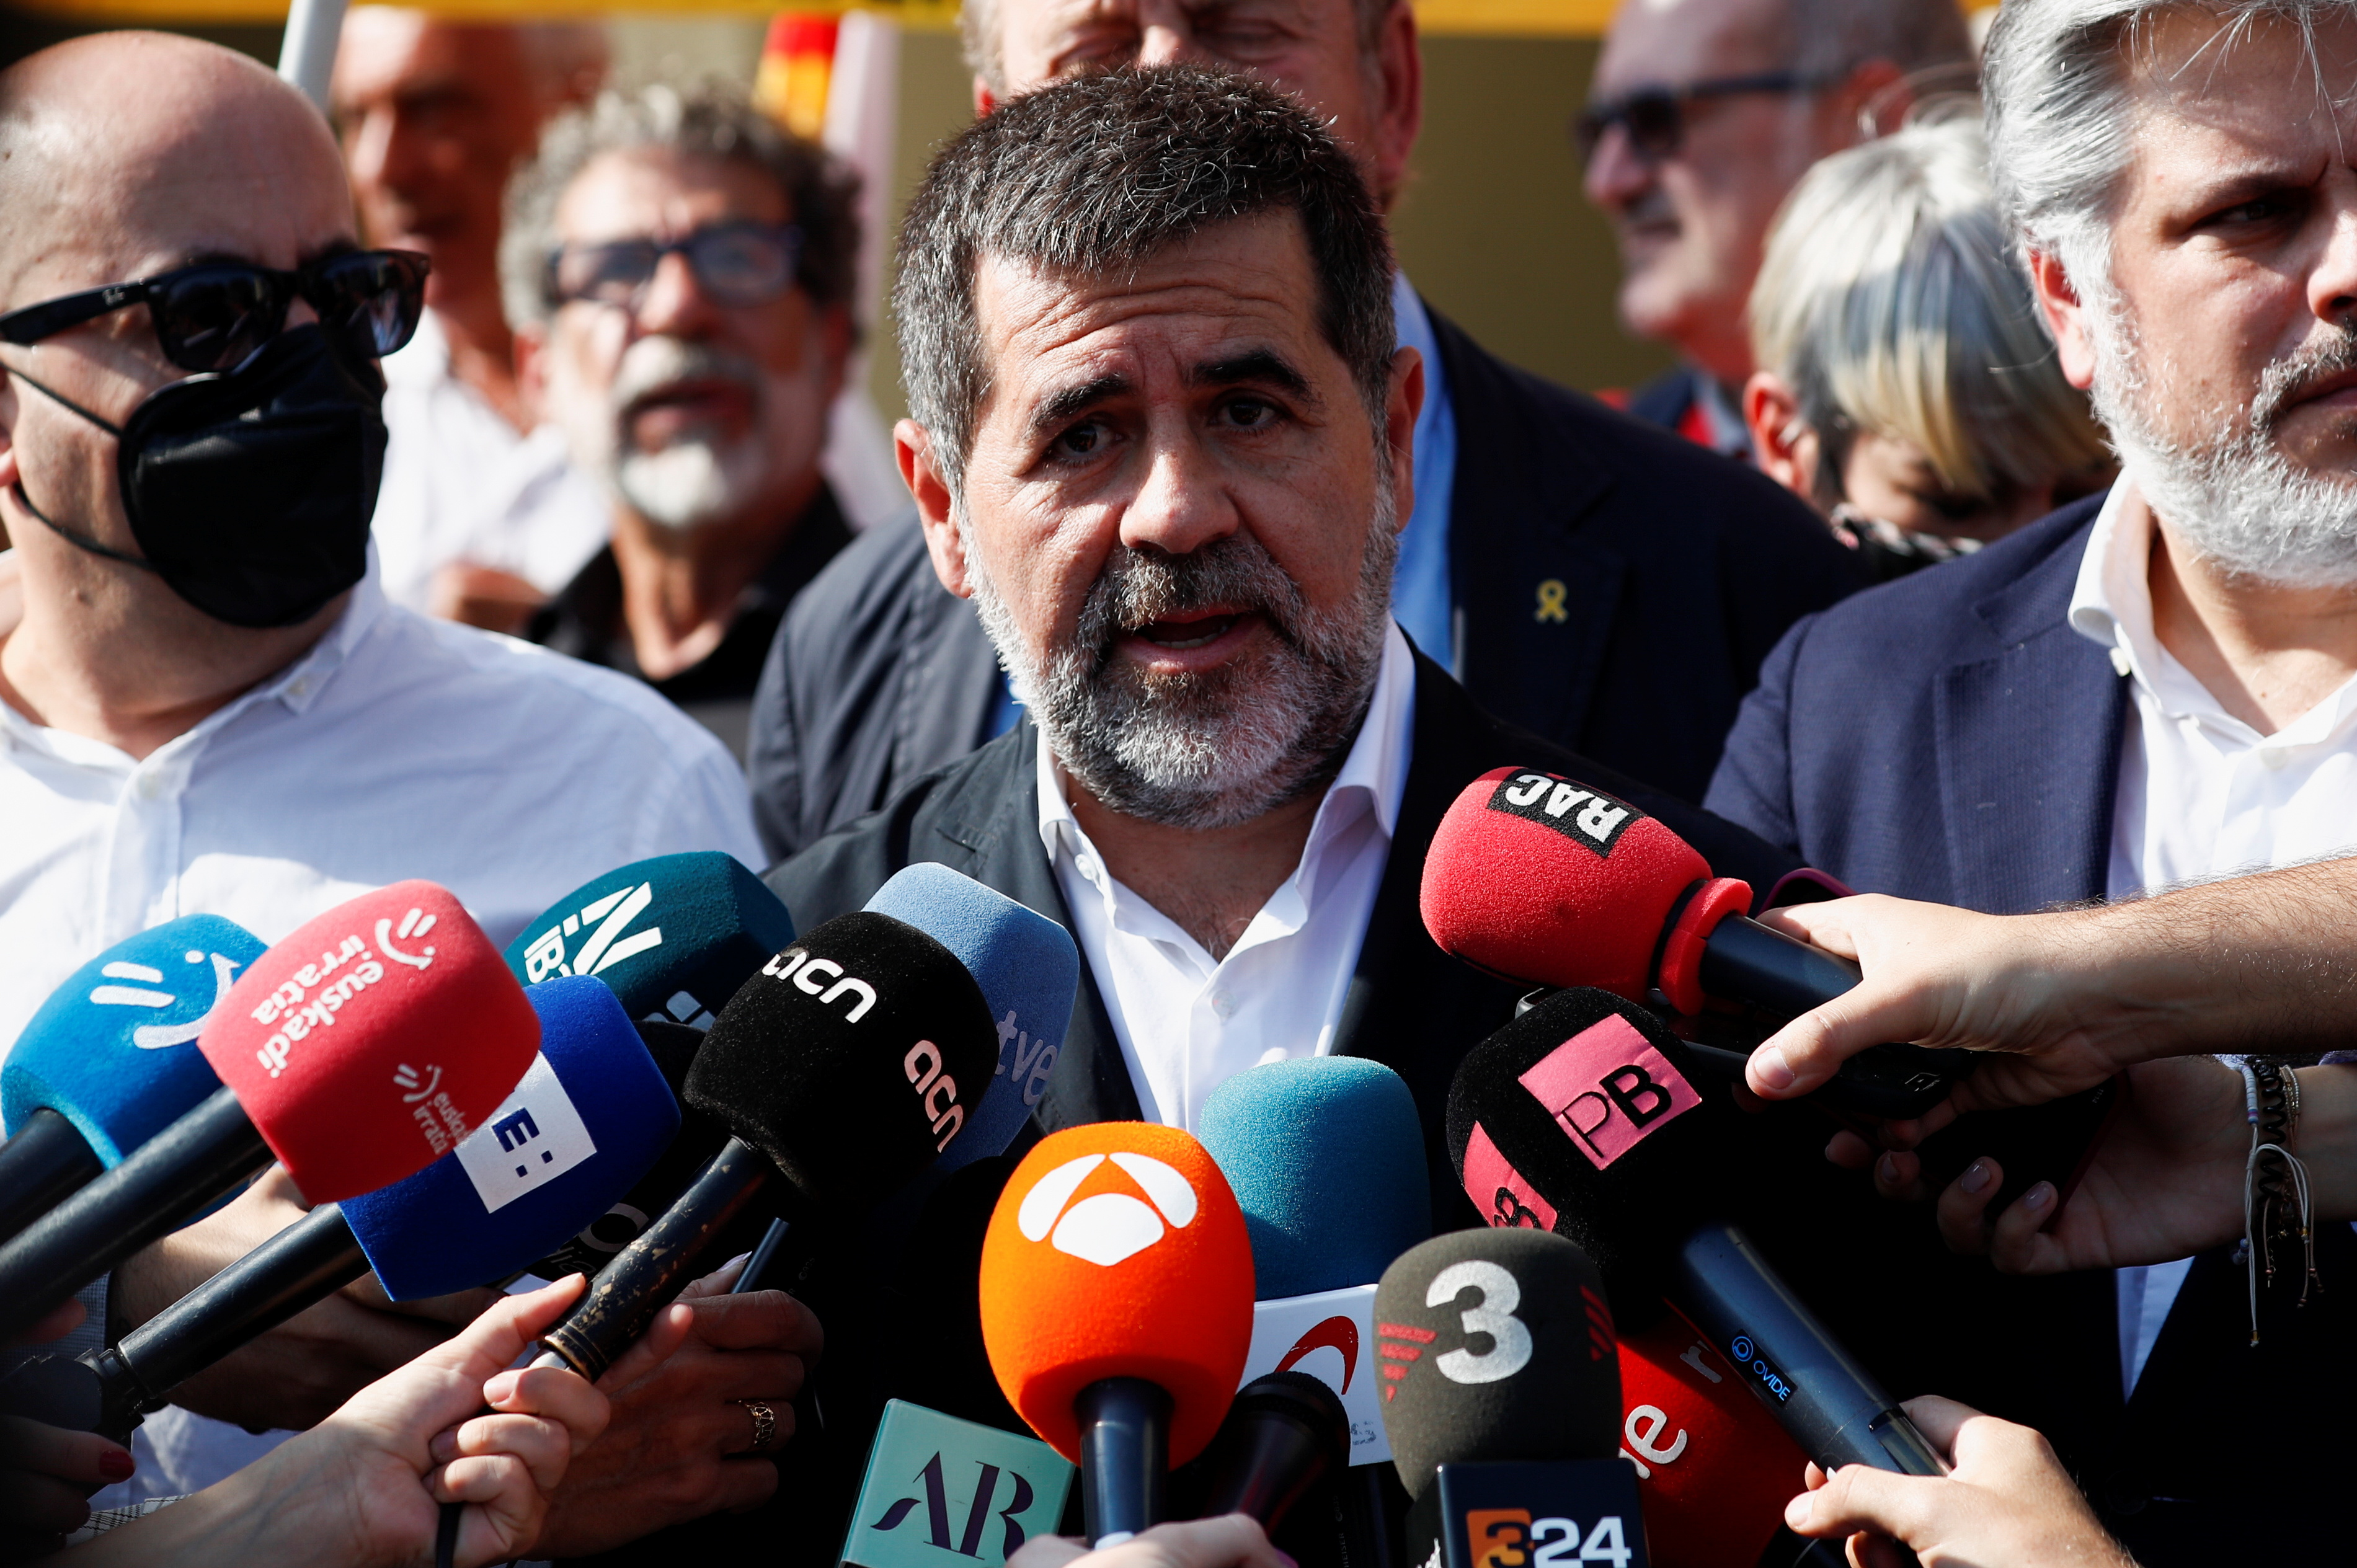 Jordi Sanchez speaks to the media, as Catalan separatist leader Carles Puigdemont (not pictured) arrives at a courthouse in Sardinia at the first hearing on his European arrest warrant, in Sassari, Italy, October 4, 2021. REUTERS/Guglielmo Mangiapane